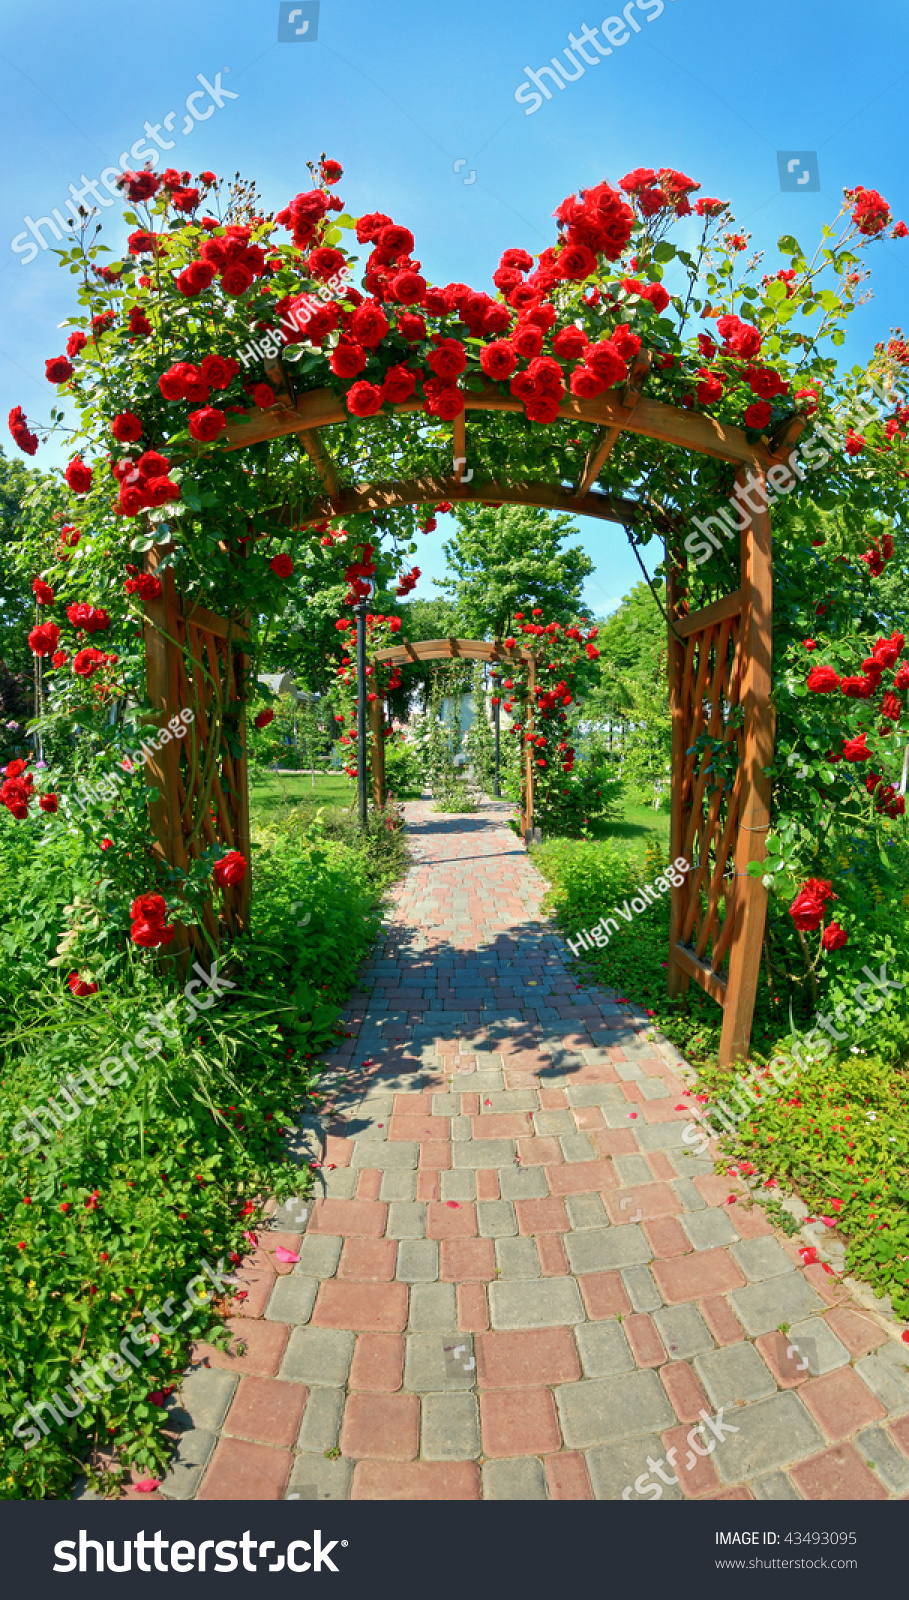 Photo Of Very Nice Garden With Lots Of Roses 43493095